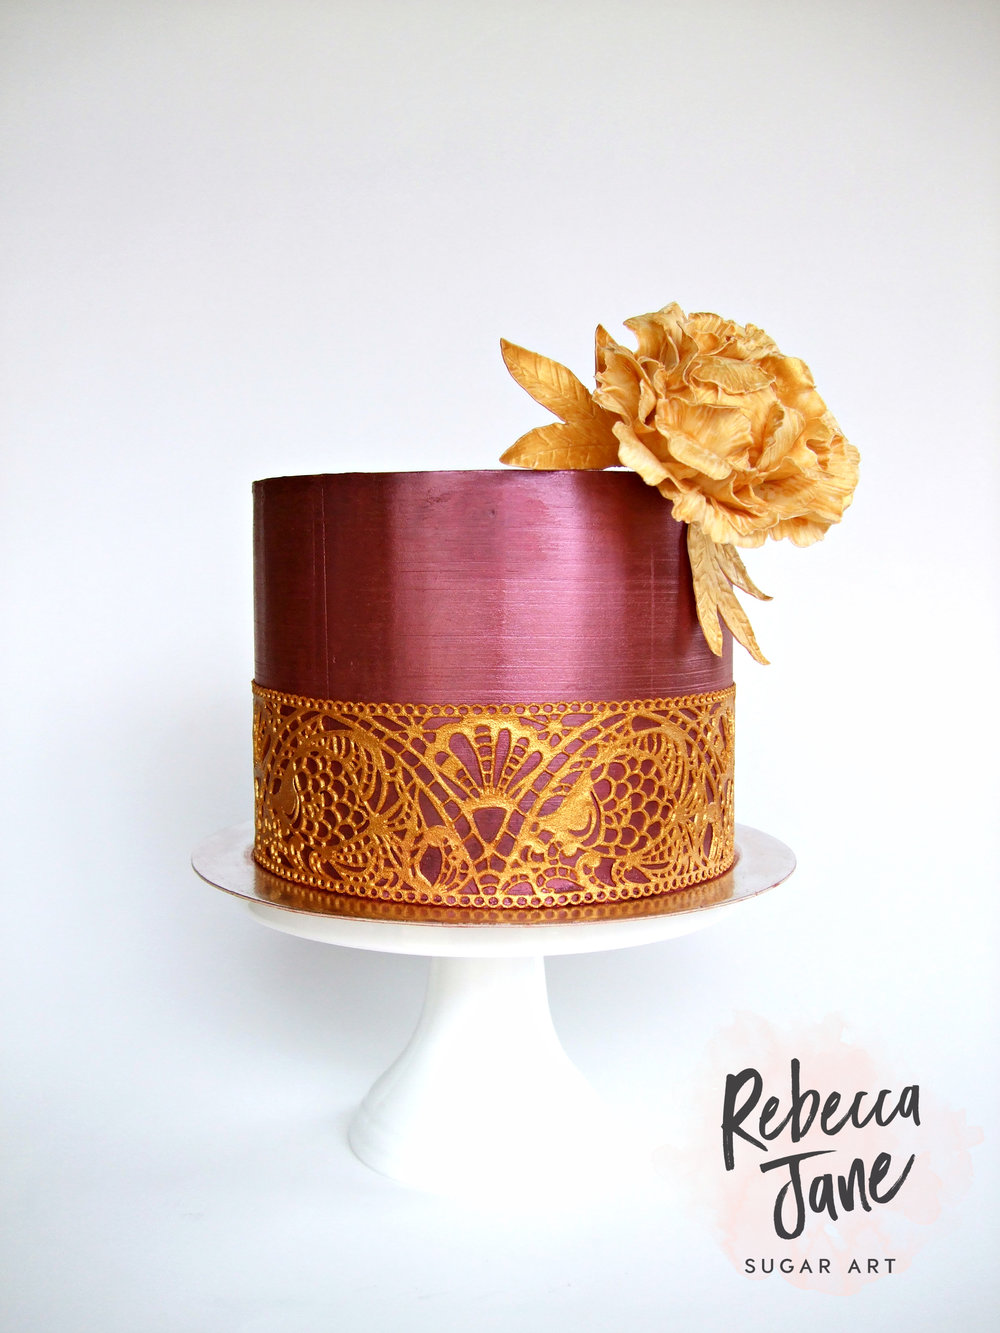 Rebecca Jane Sugar Art - metallic red and gold lace cake with sugar peony